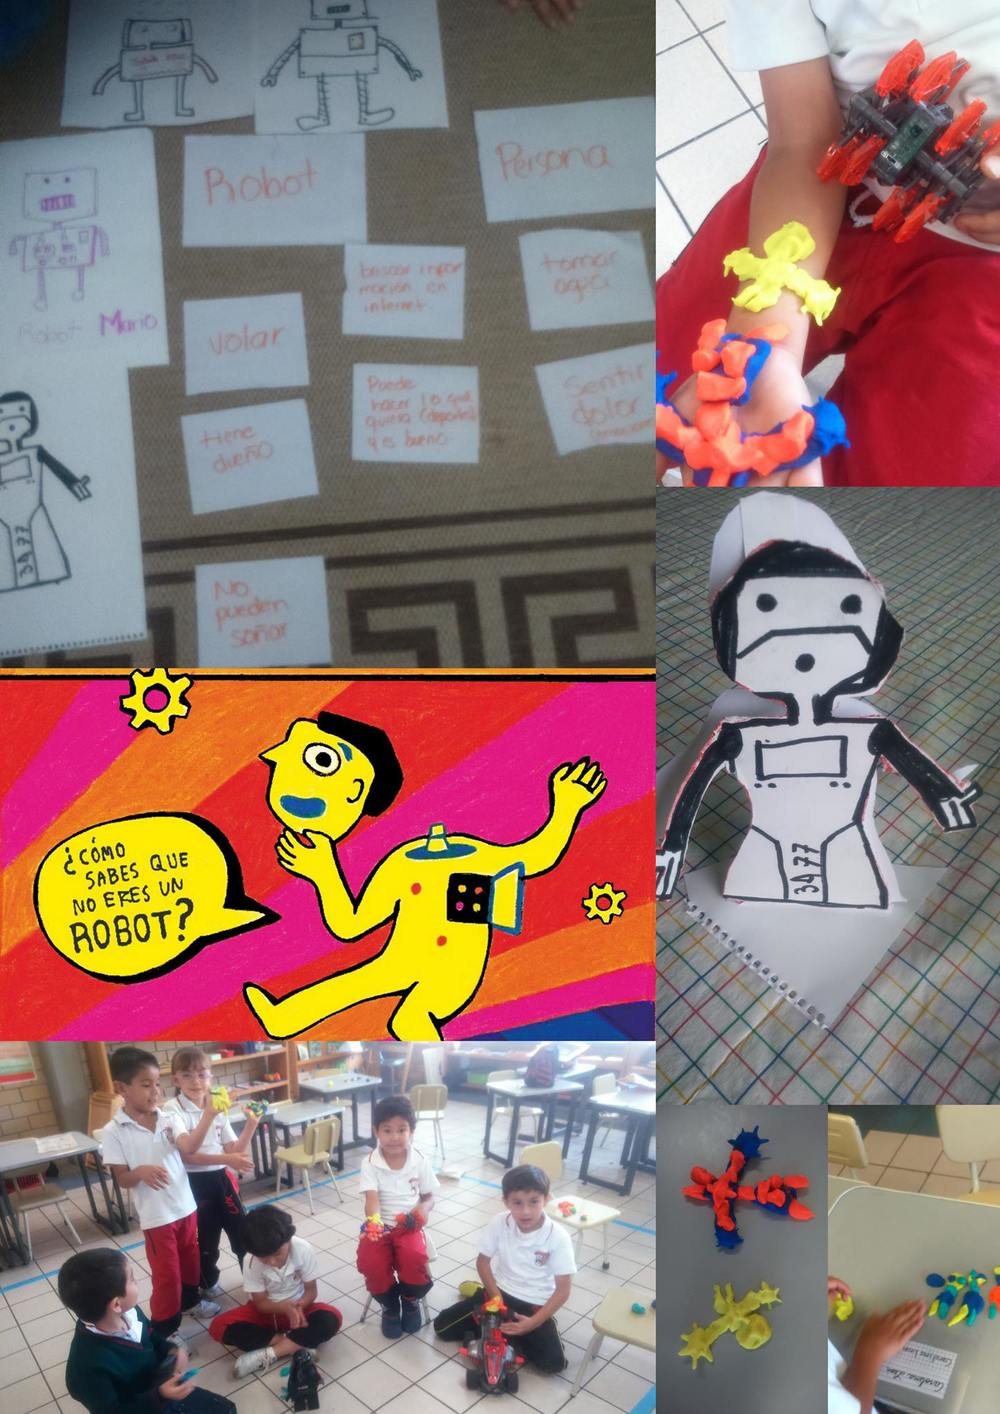 "This is what they told us on Facebook: Today in our last school session, we have been talking about ROBOTS. We have behaved like robots, drawn robots and spoken a bit about how we know that we are NOT robots. We also made robots out of plasticine. We  had a great time. We want to thank Wonder Ponder and Koiné Filosofica for asking us the question! Here are some of the answers that came up. Armando ""I'm not a robot because I have blood"" Luigi ""Humans have cells that protect us from viruses and robots do not"" Juan Pablo ""I am not a robot because I don't have any wires on my head"" Angel ""I am not a robot because I don't have an owner to tell me what to do"" Cony ""I have hair; robots don't"" Santi ""I have shoes and robots have boots"""